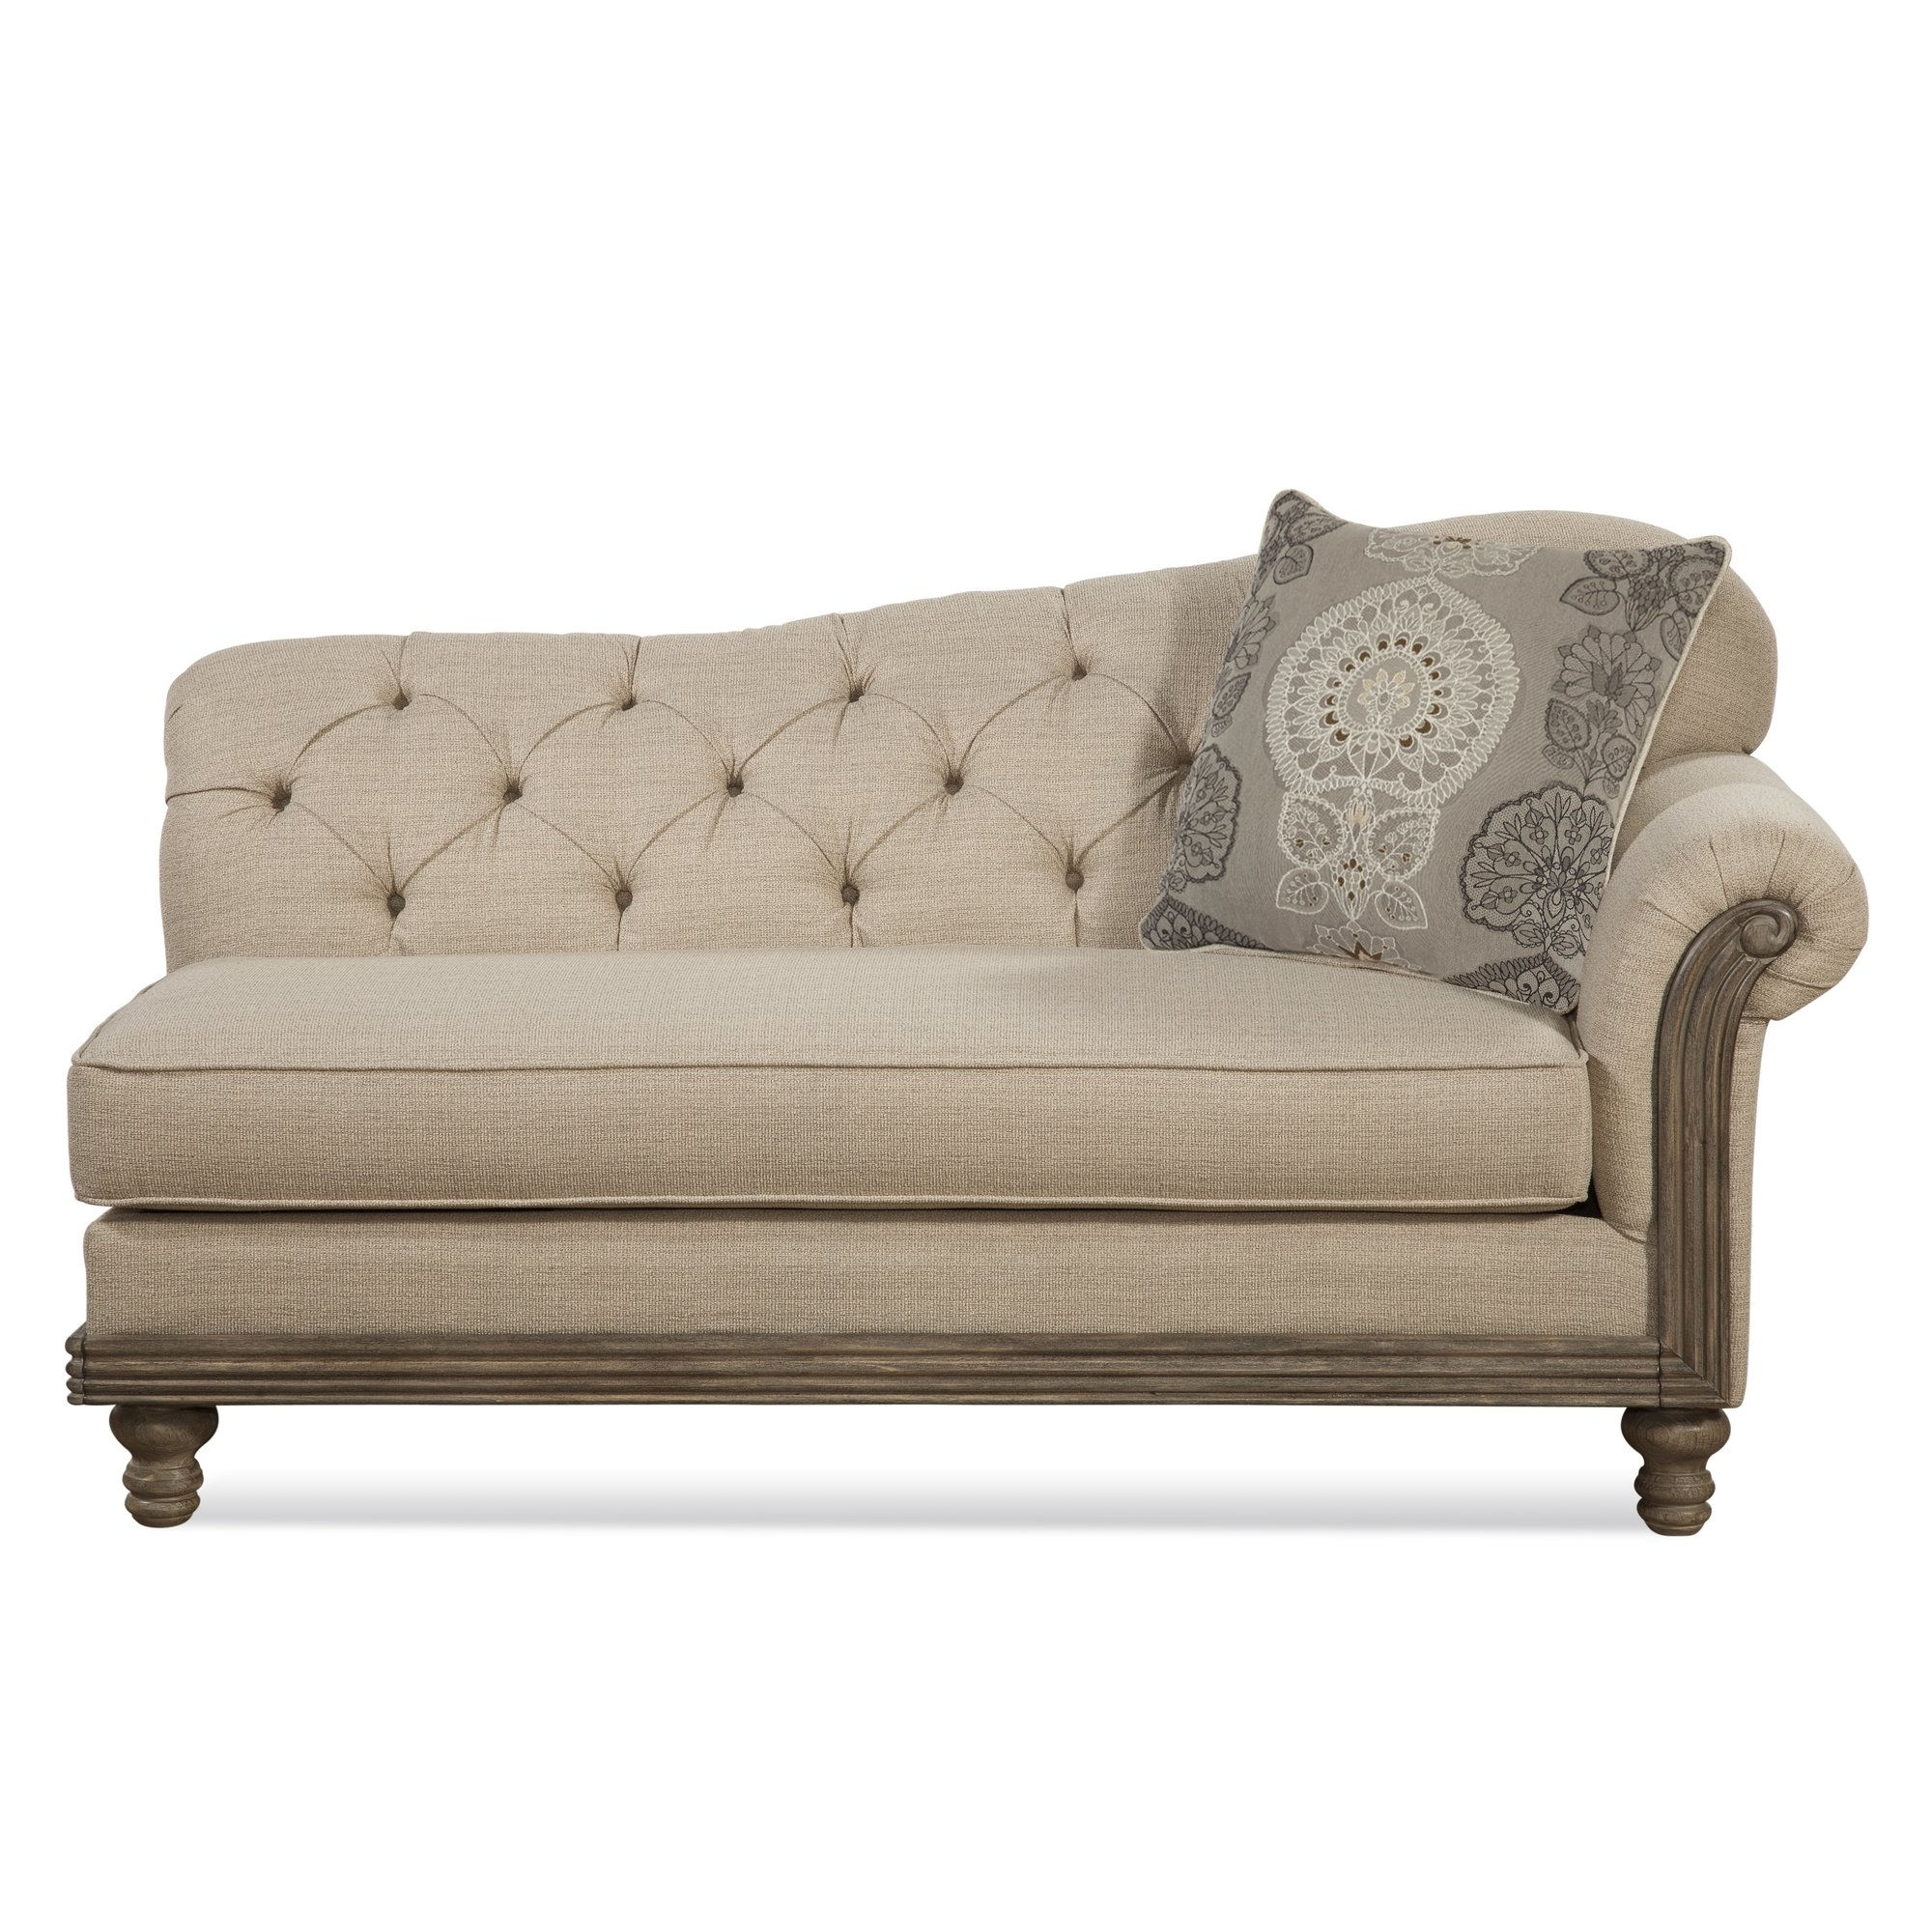 Best Ideas Of Small Chaise Lounge Chair Also Bedroom Design With Regard To Fashionable Narrow Chaise Lounge Chairs (View 1 of 15)